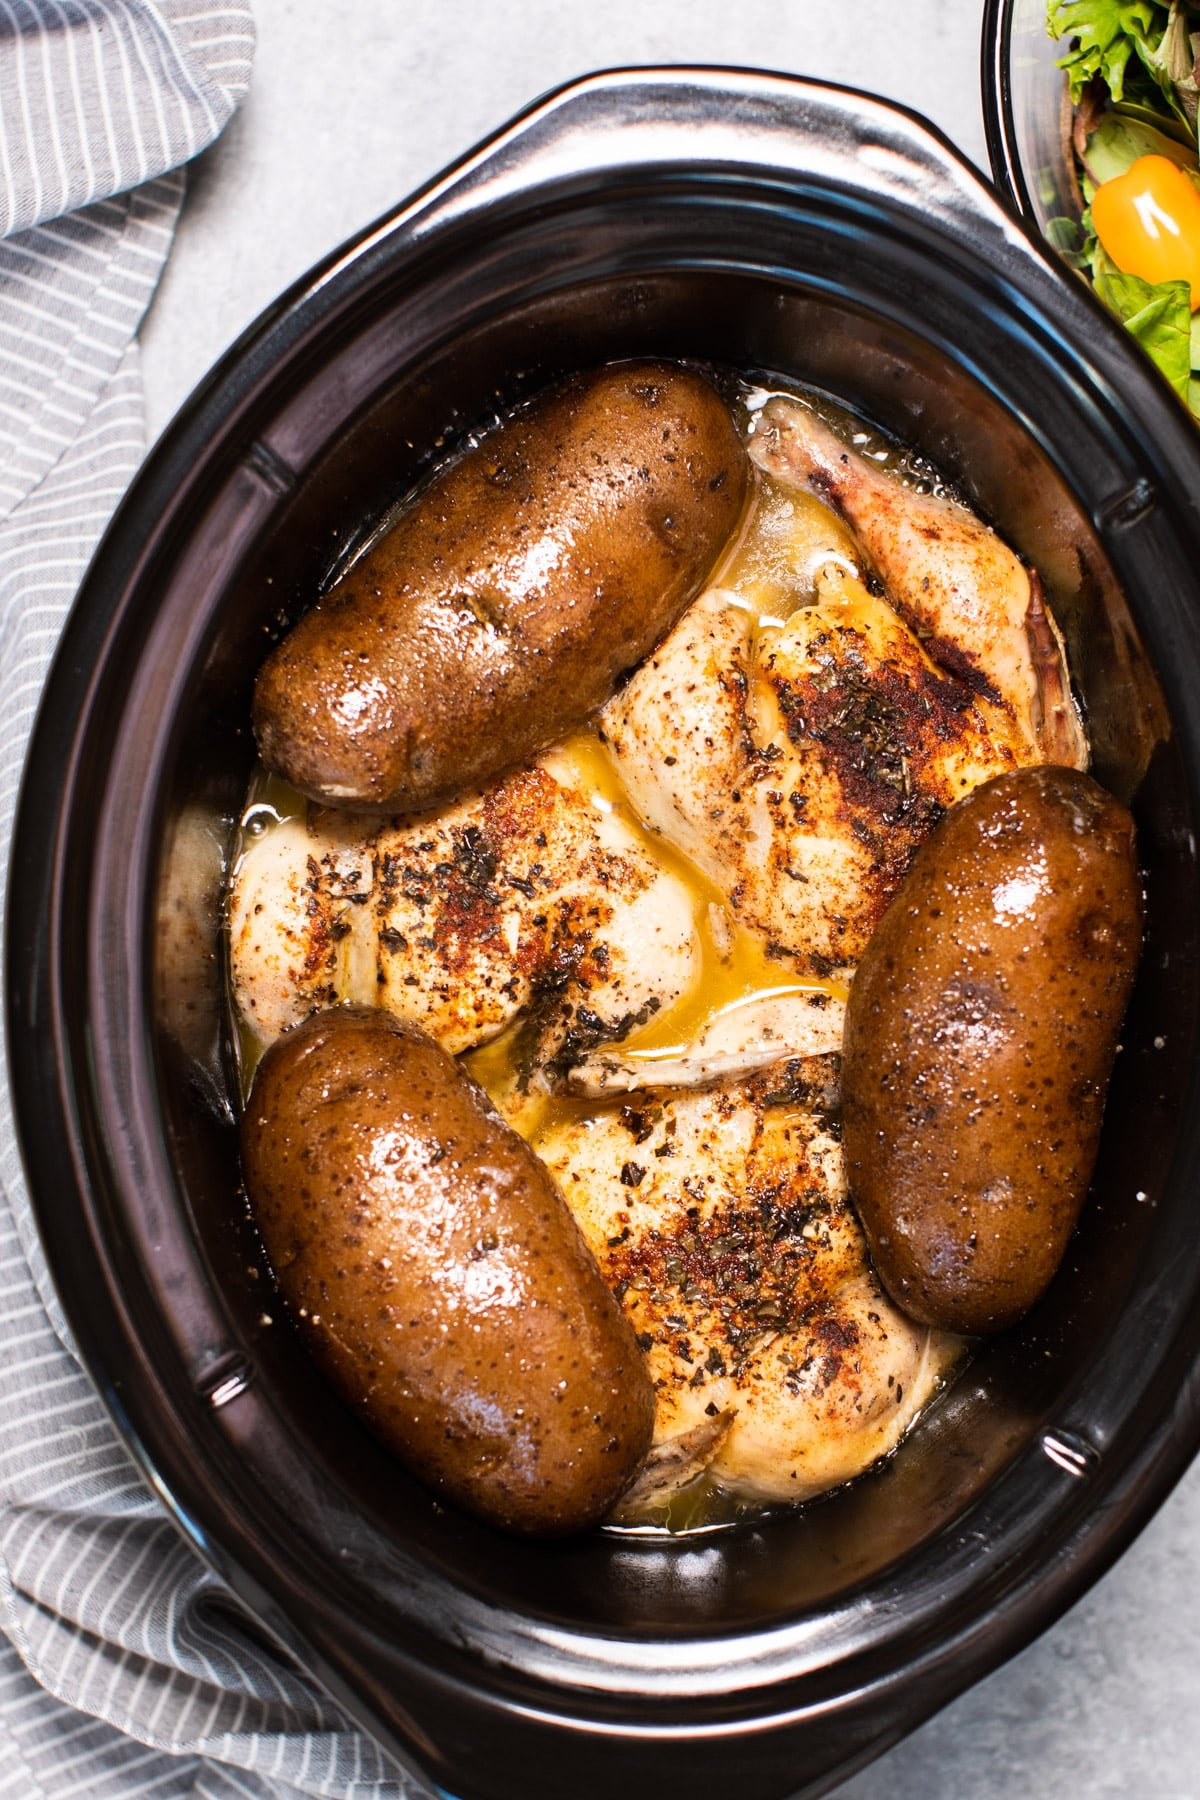 3 game hens and 3 russet potatoes, done cooking in a slow cooker